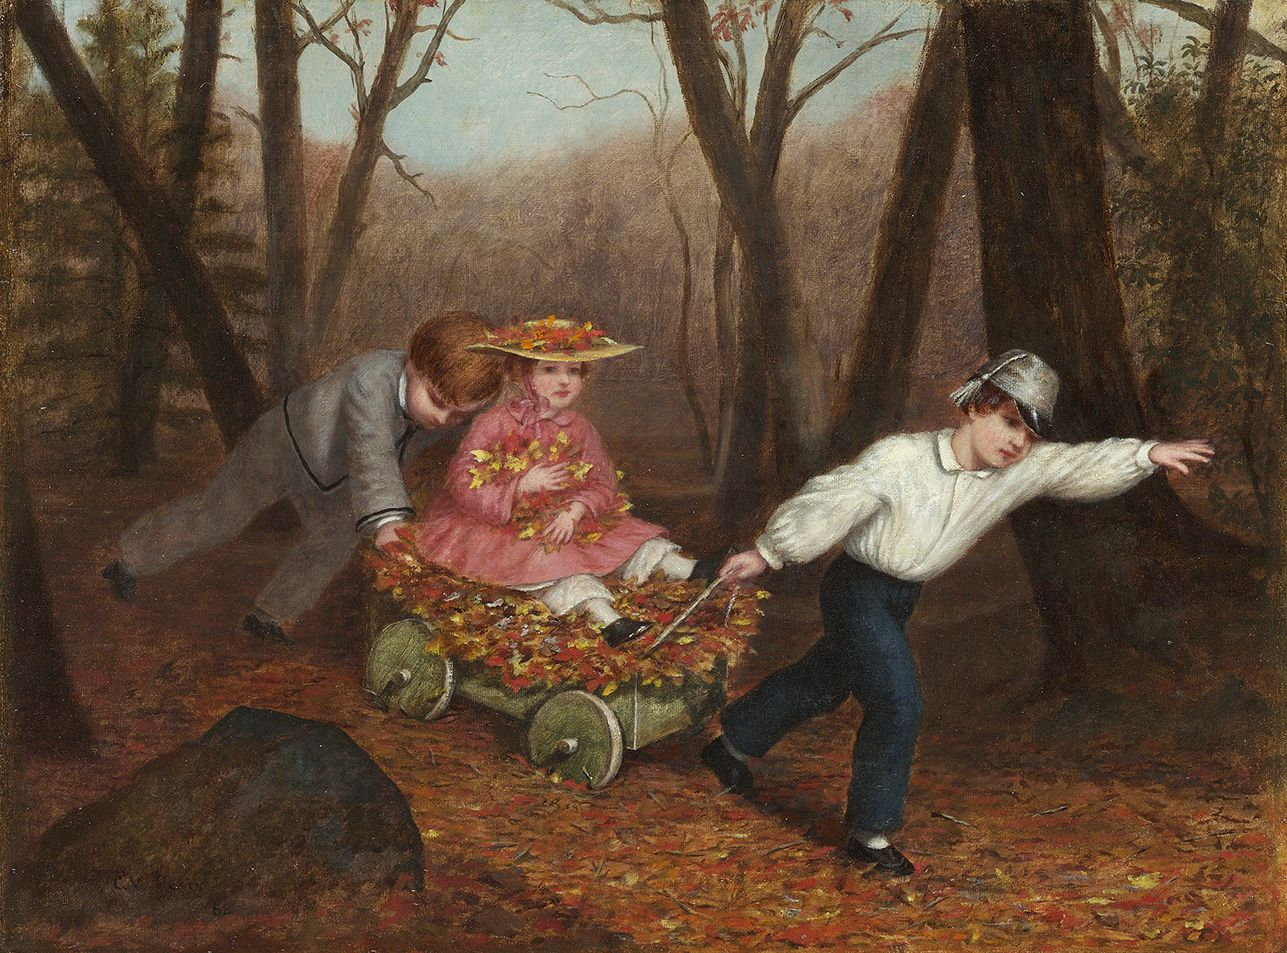 Enoch Wood Perry, Jr. (1831-1915), Collecting Autumn Leaves, 1868